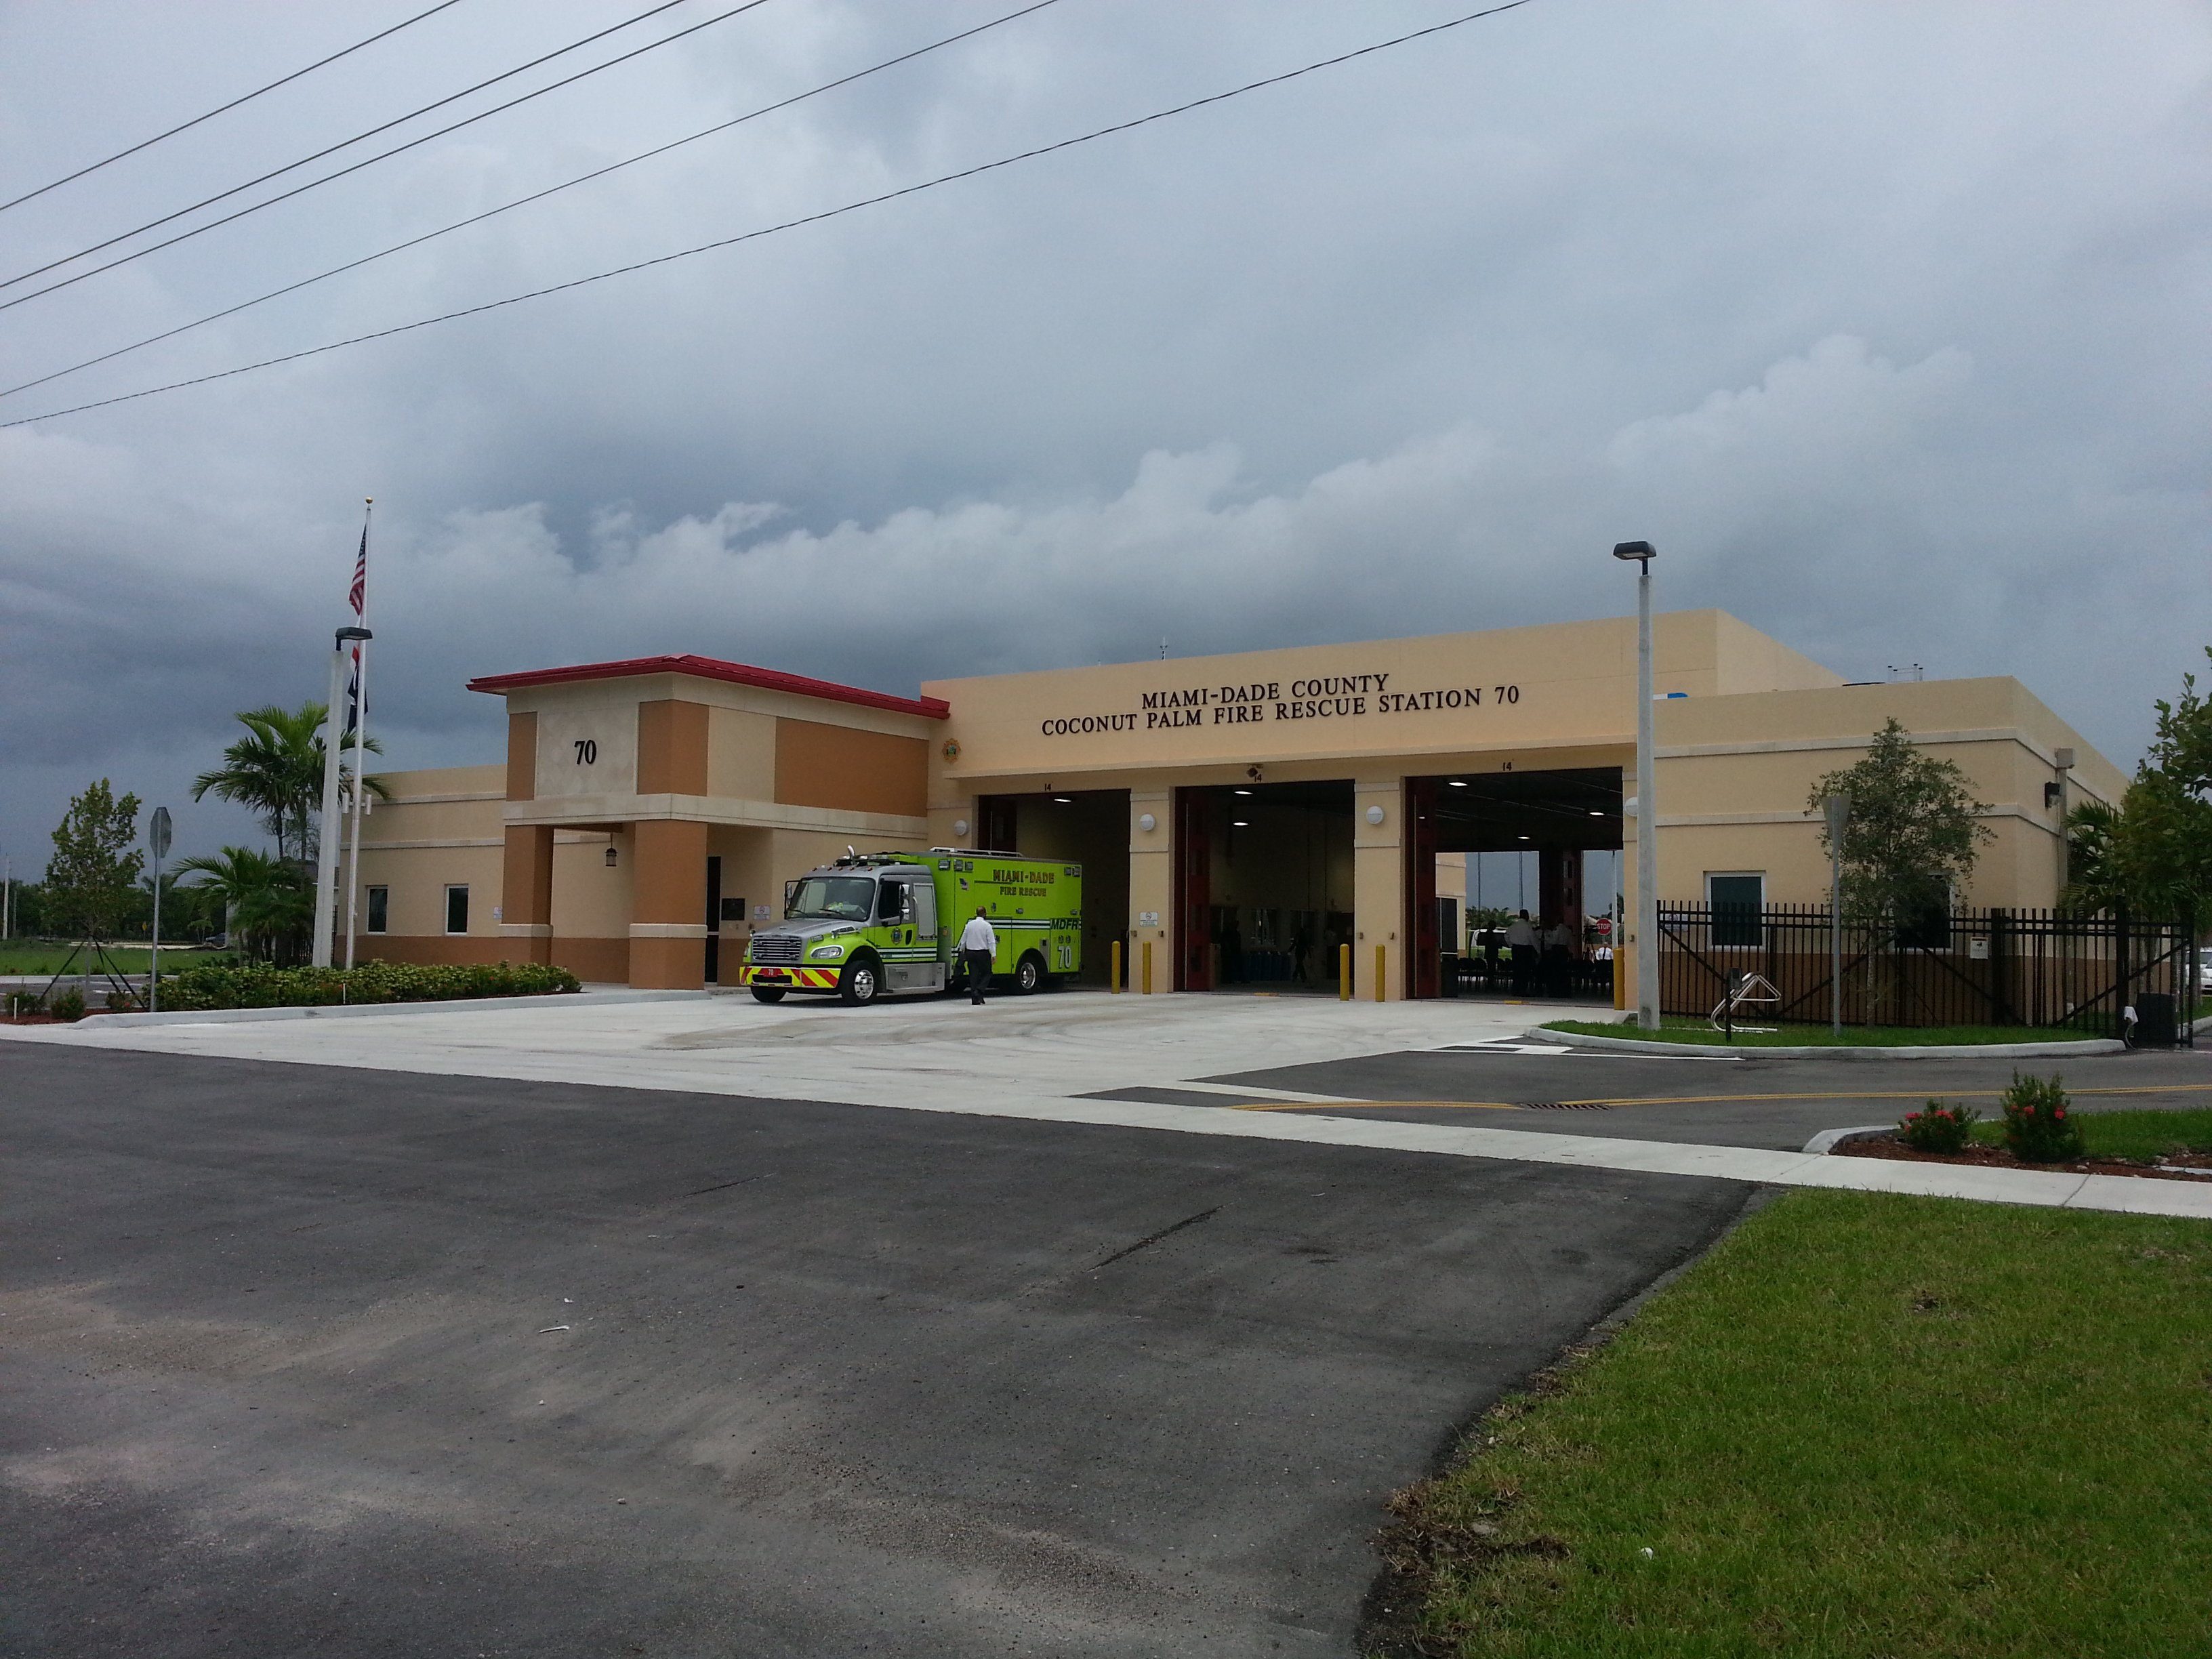 Miami-Dade County Fire & Rescue Station #70Structural Engineering DivisionHomestead, FL